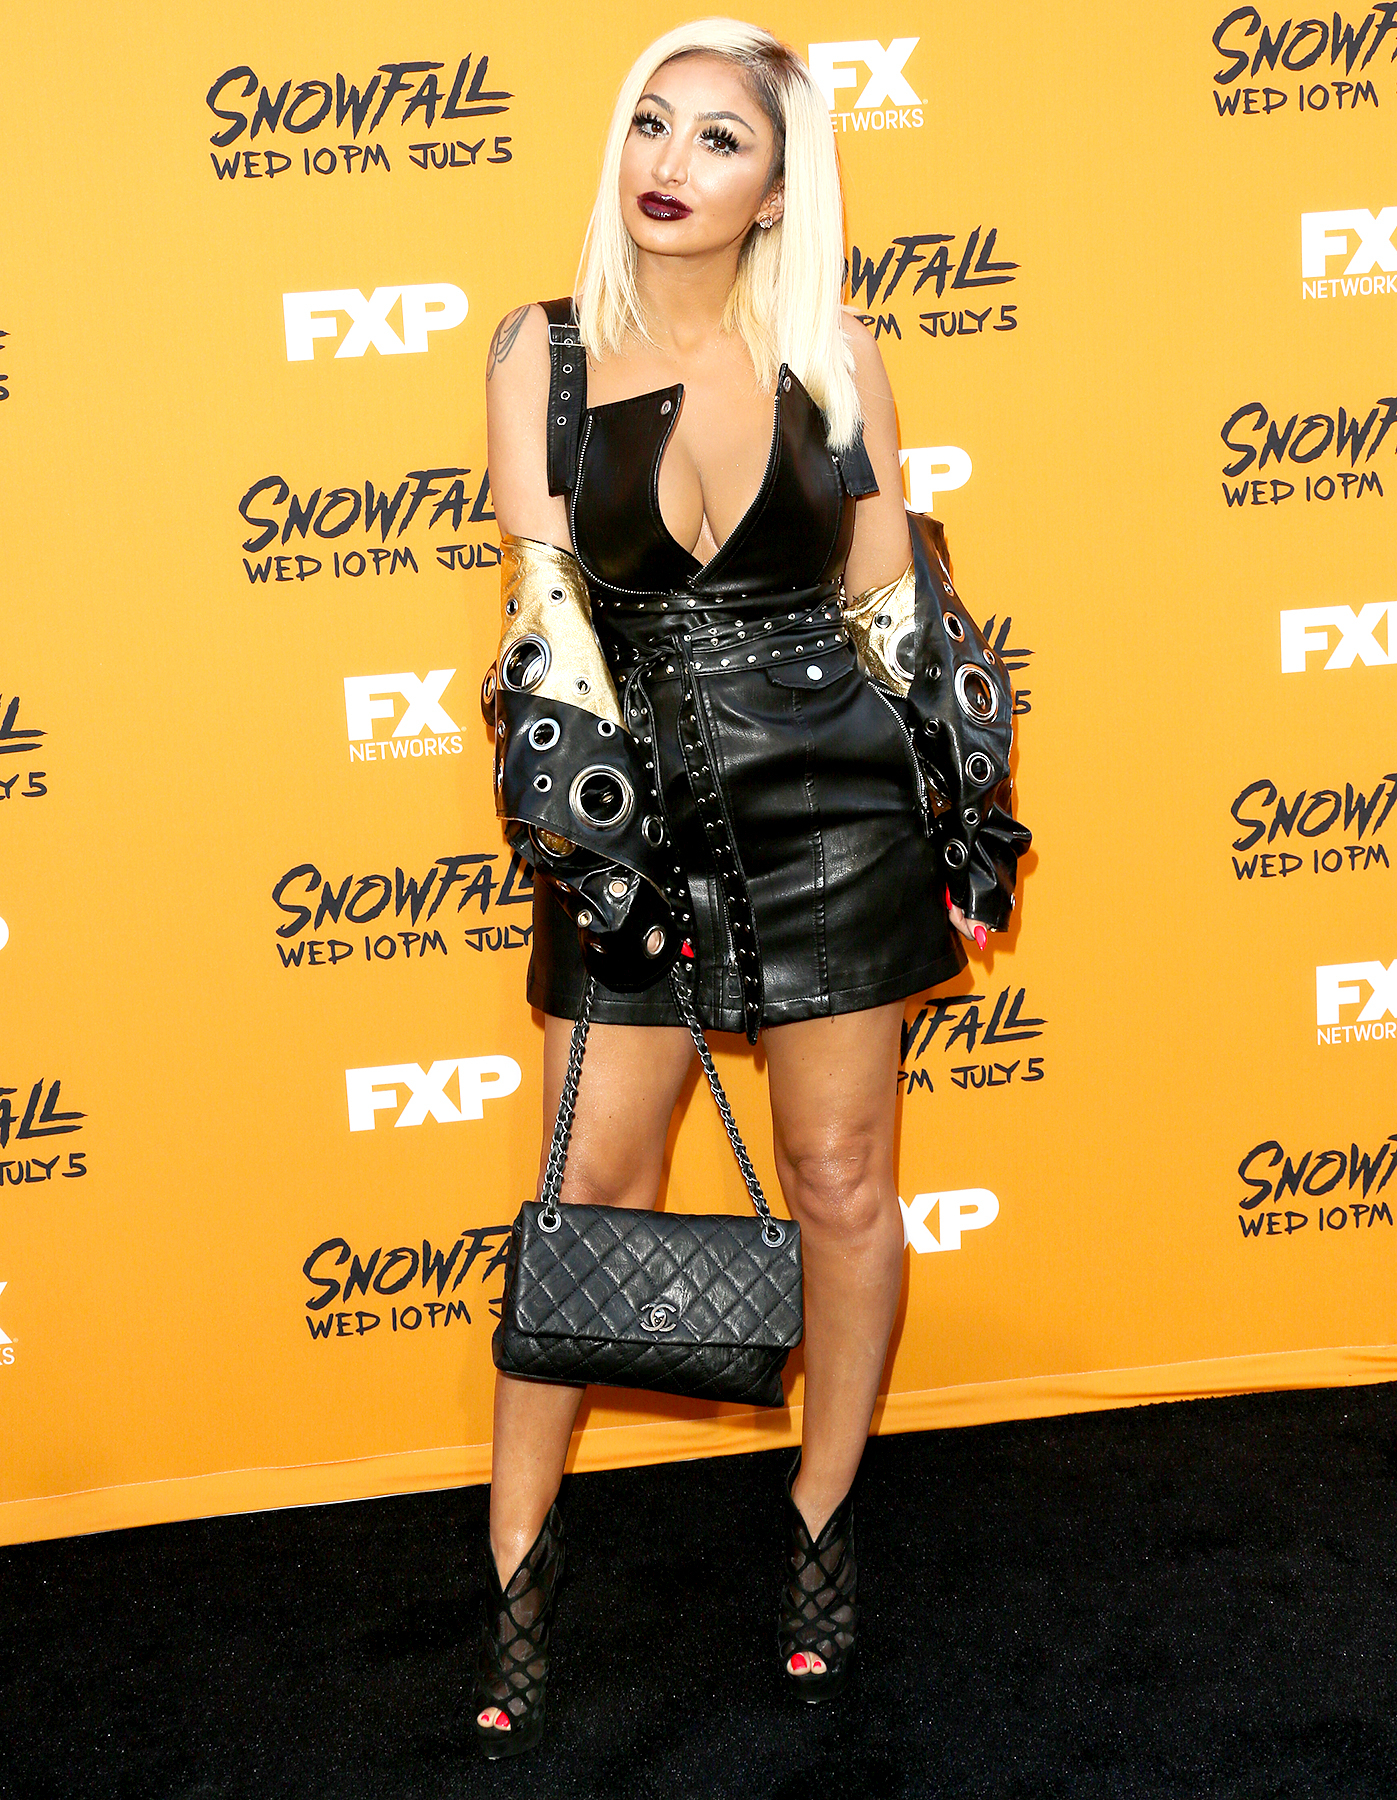 """Fashion Designer Angel Brinks attends the premiere of FX's """"Snowfall"""" at The Theatre at Ace Hotel on June 26, 2017 in Los Angeles, California."""